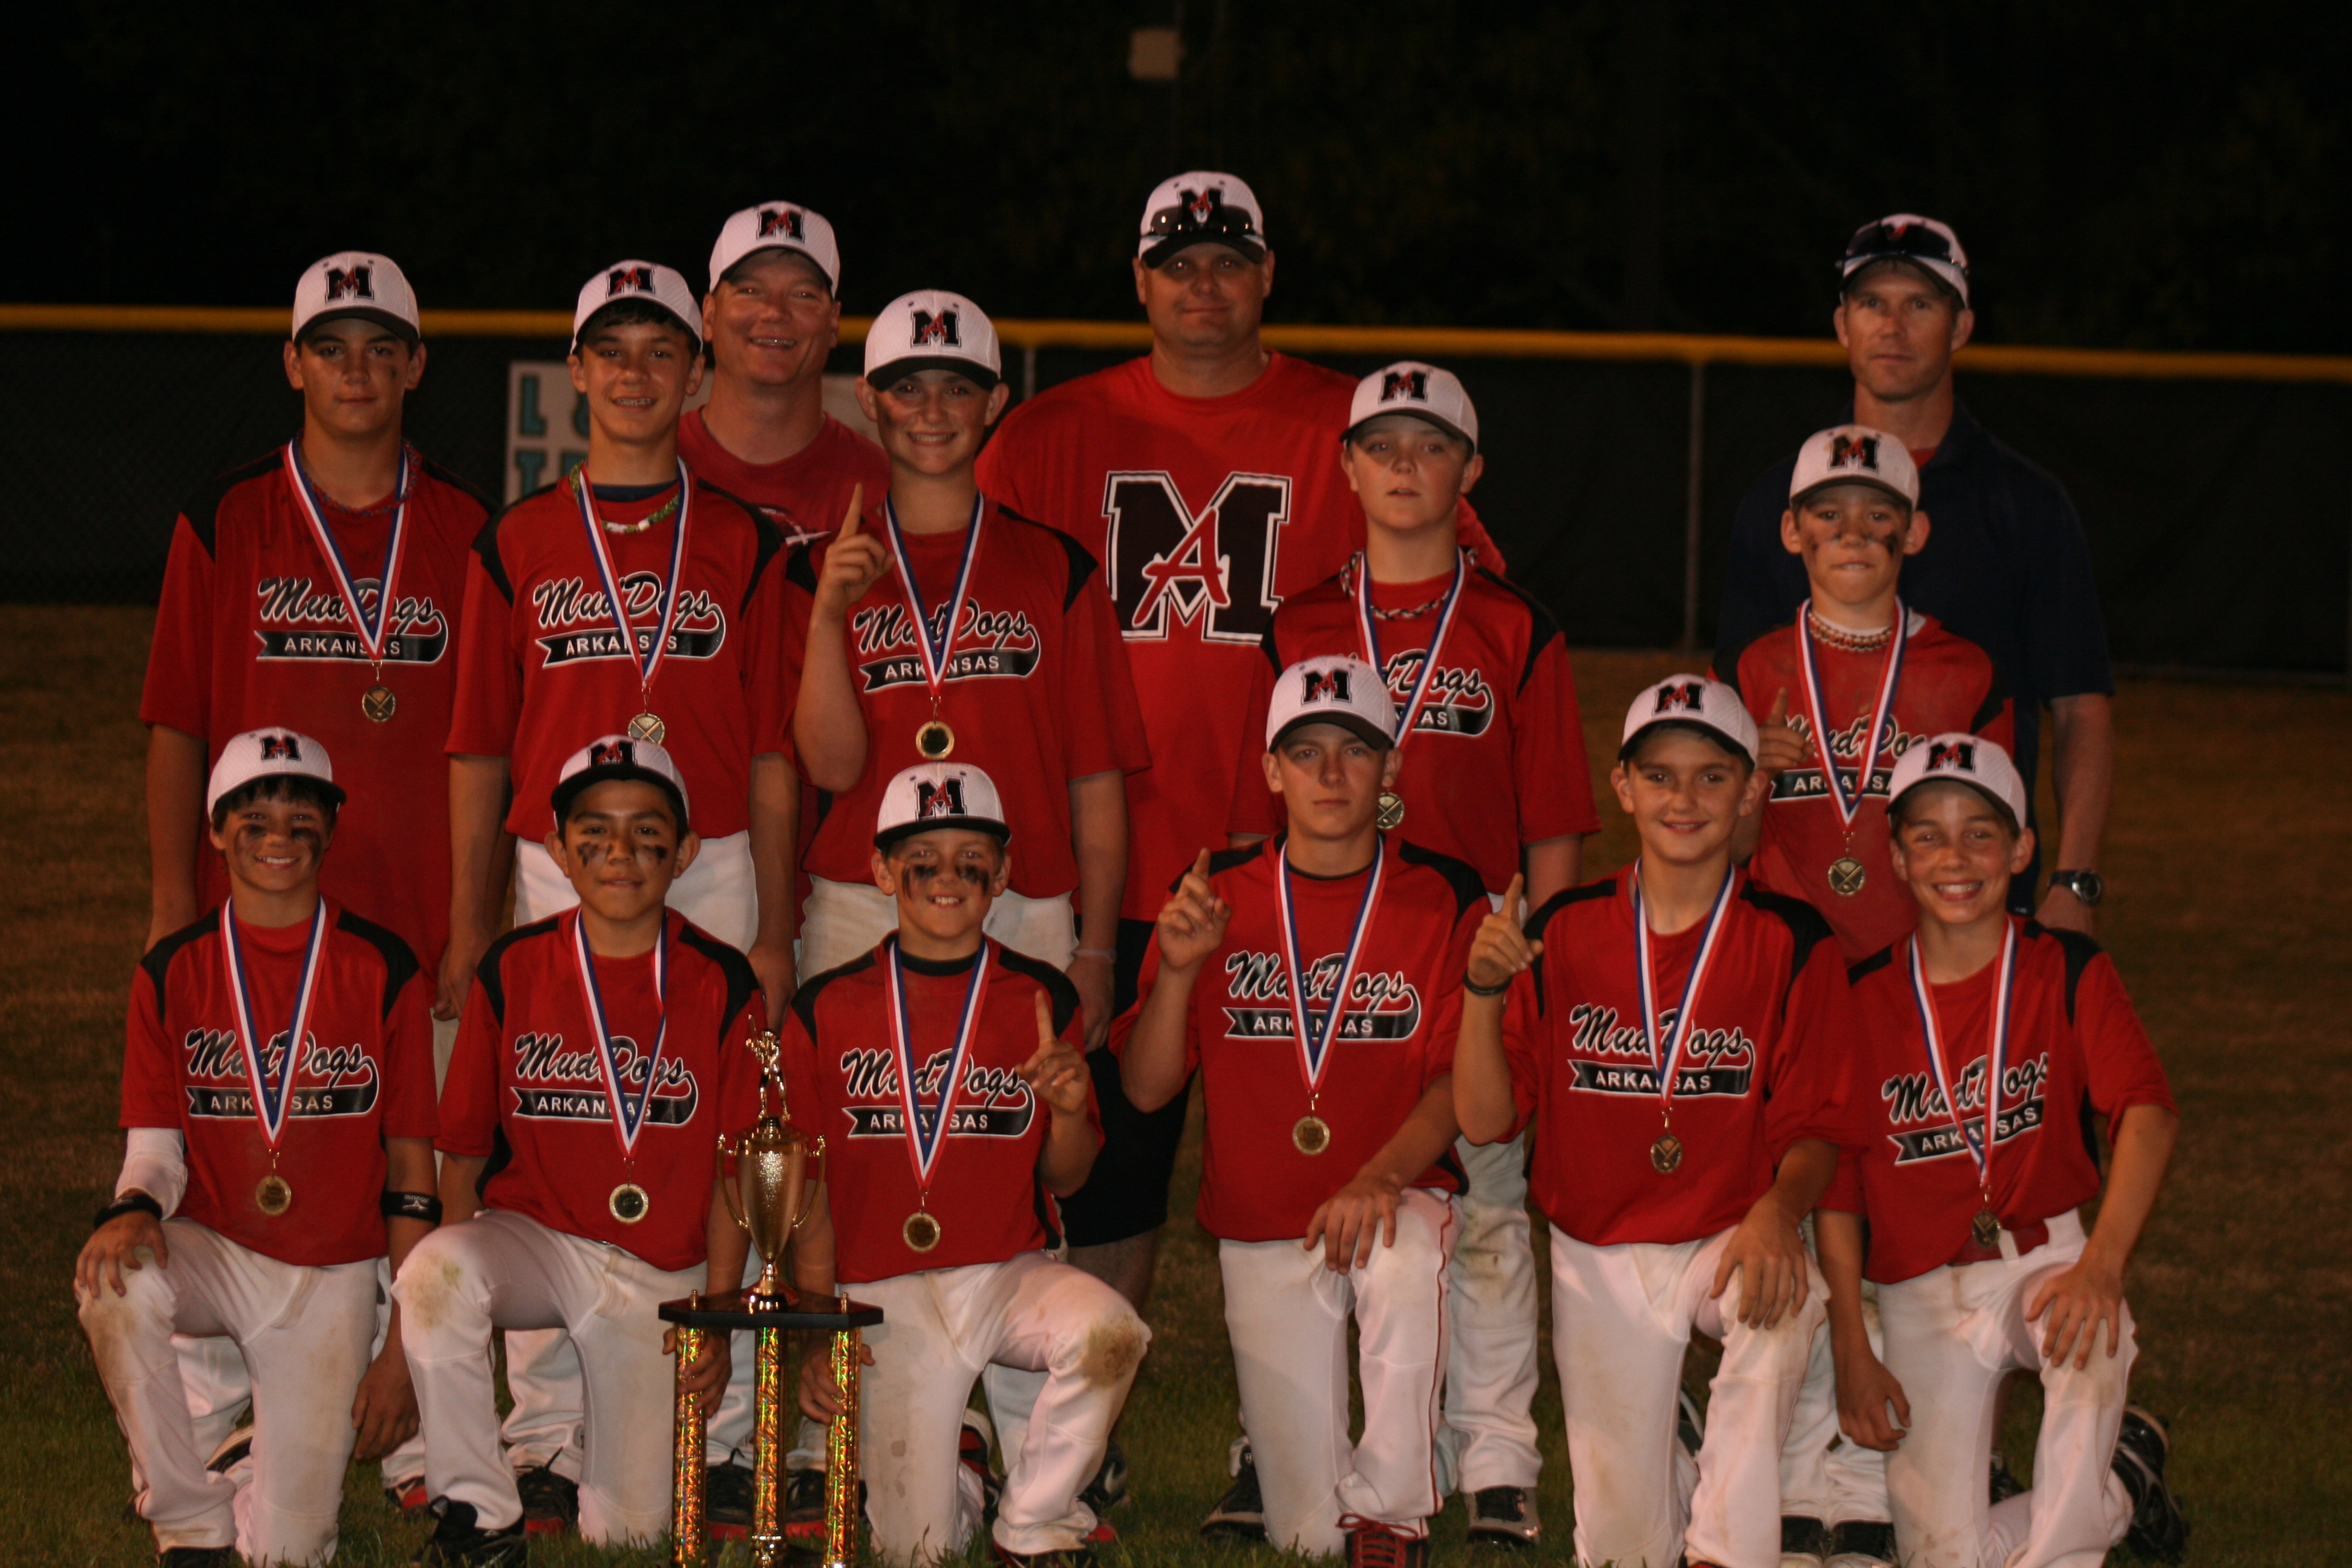 RAWLINGS SPRINGDALE MUDDOGS -- SPRINGDALE, AR